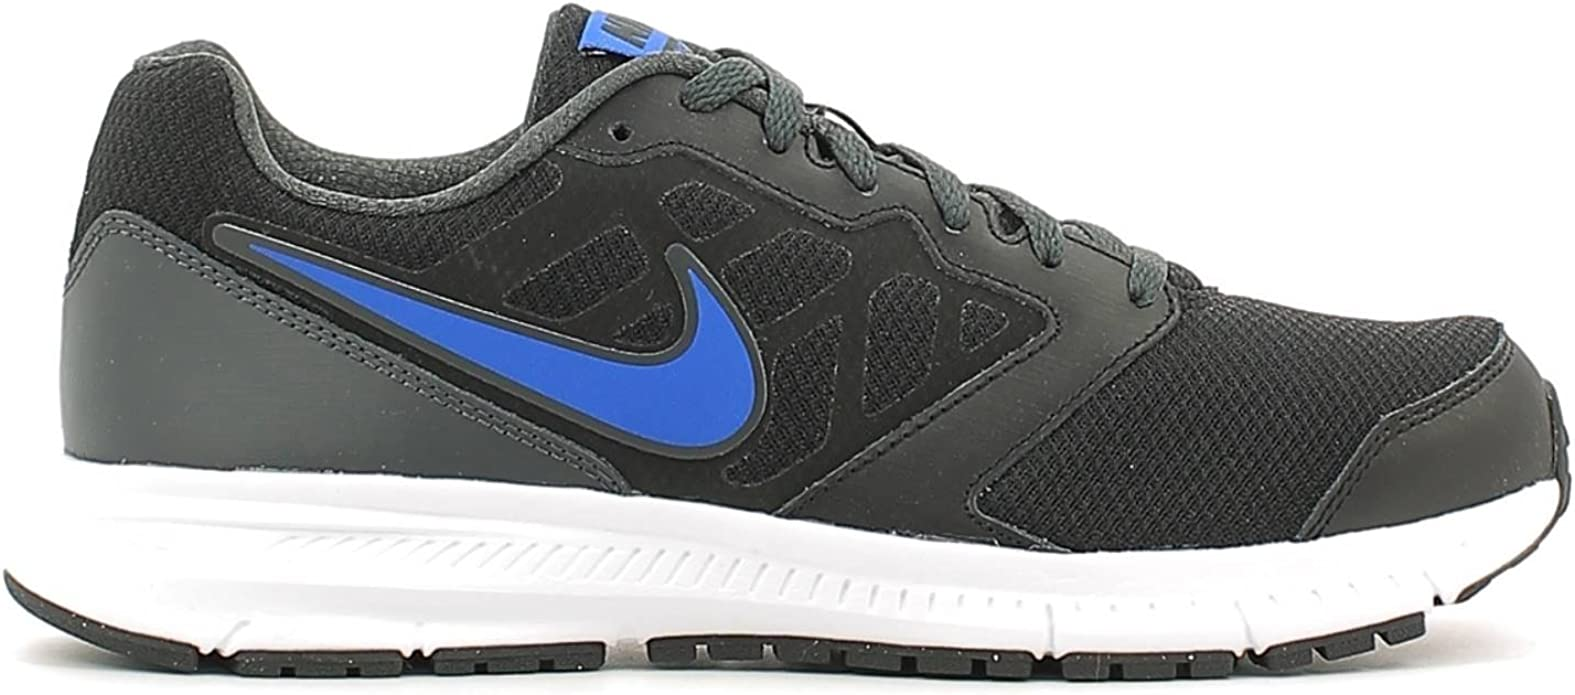 shades of attractive price cheapest price Nike Downshifter 6, Chaussures de course homme: Amazon.fr ...